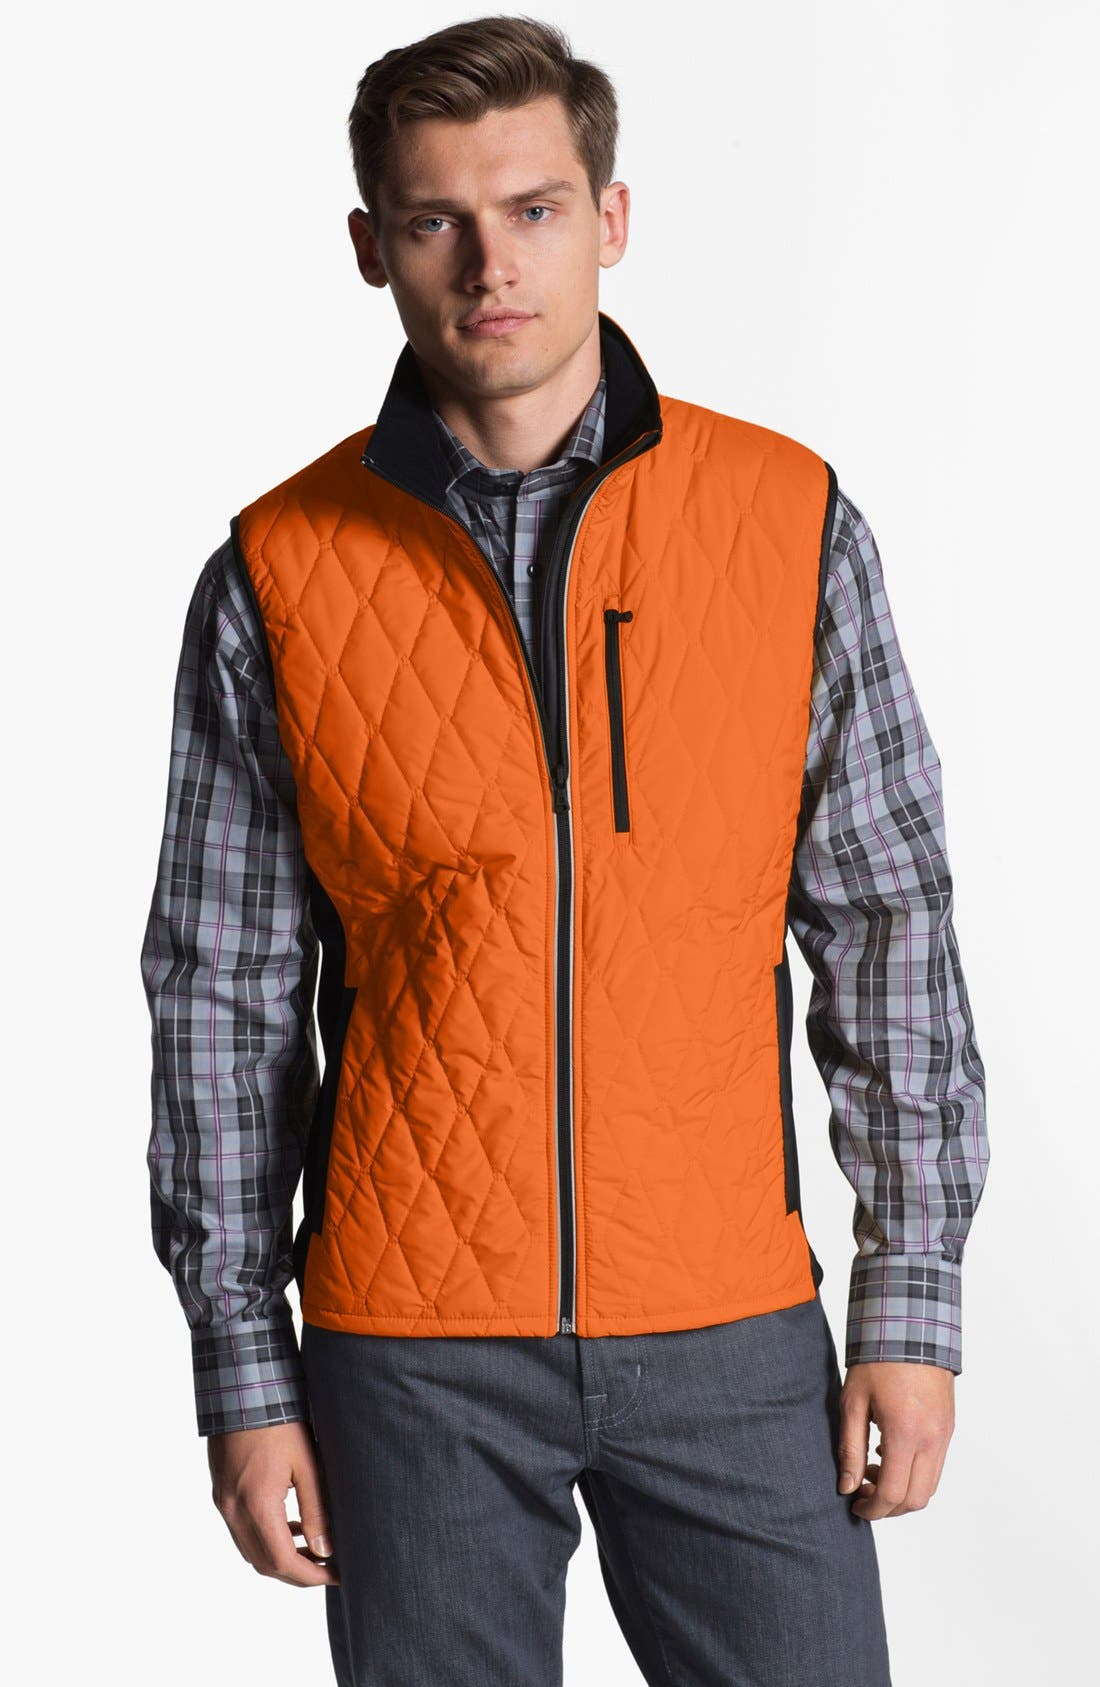 Alternate Image 1 Selected - Victorinox Swiss Army® 'Glares' Quilted Vest (Online Only)